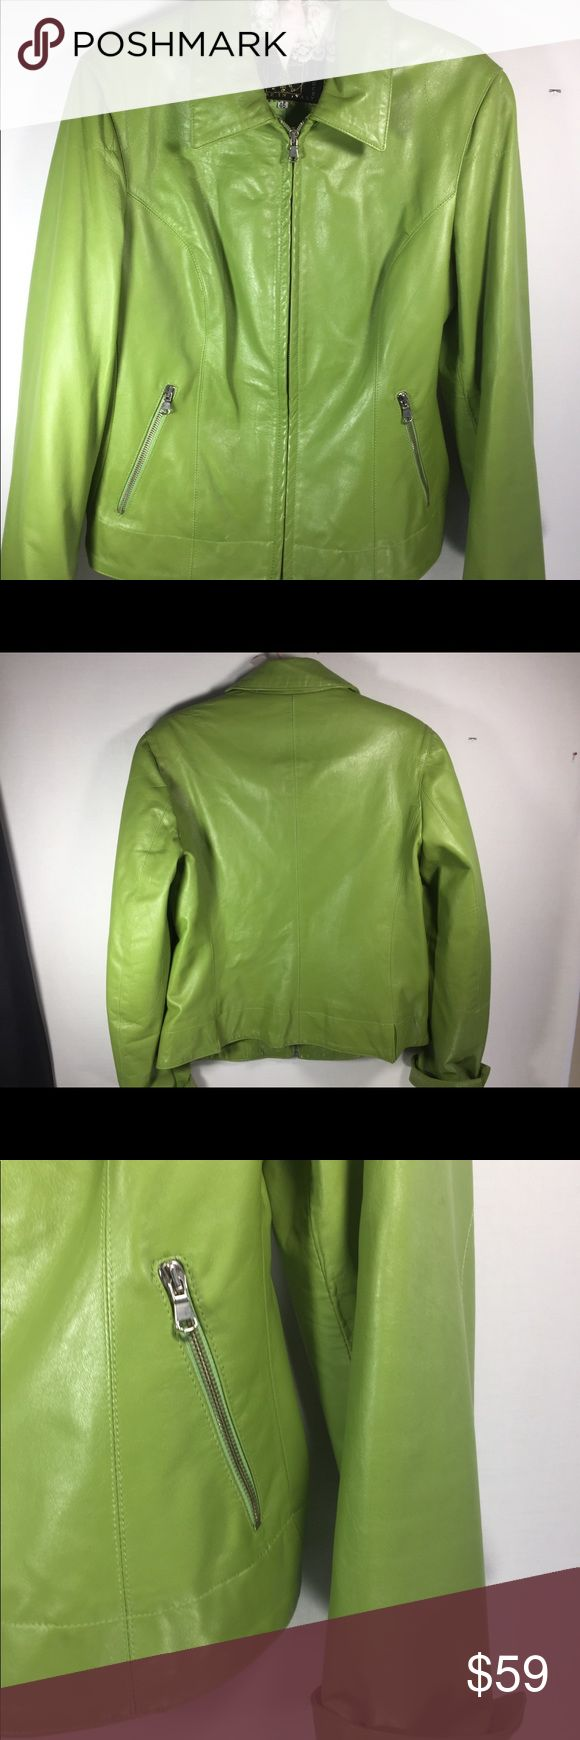 "Green Italian Leather Jacket Leonardo da Vinci NOTE tag shows Italian sizing 46. Please measure a jacket that fits you to compare.  Chest from side to side laid flat is 18"",length from from neck in back to hem is 22"". Shoulder to shoulder is 16"". Please inquire with any questions. Leonardo da Vinci Jackets & Coats"